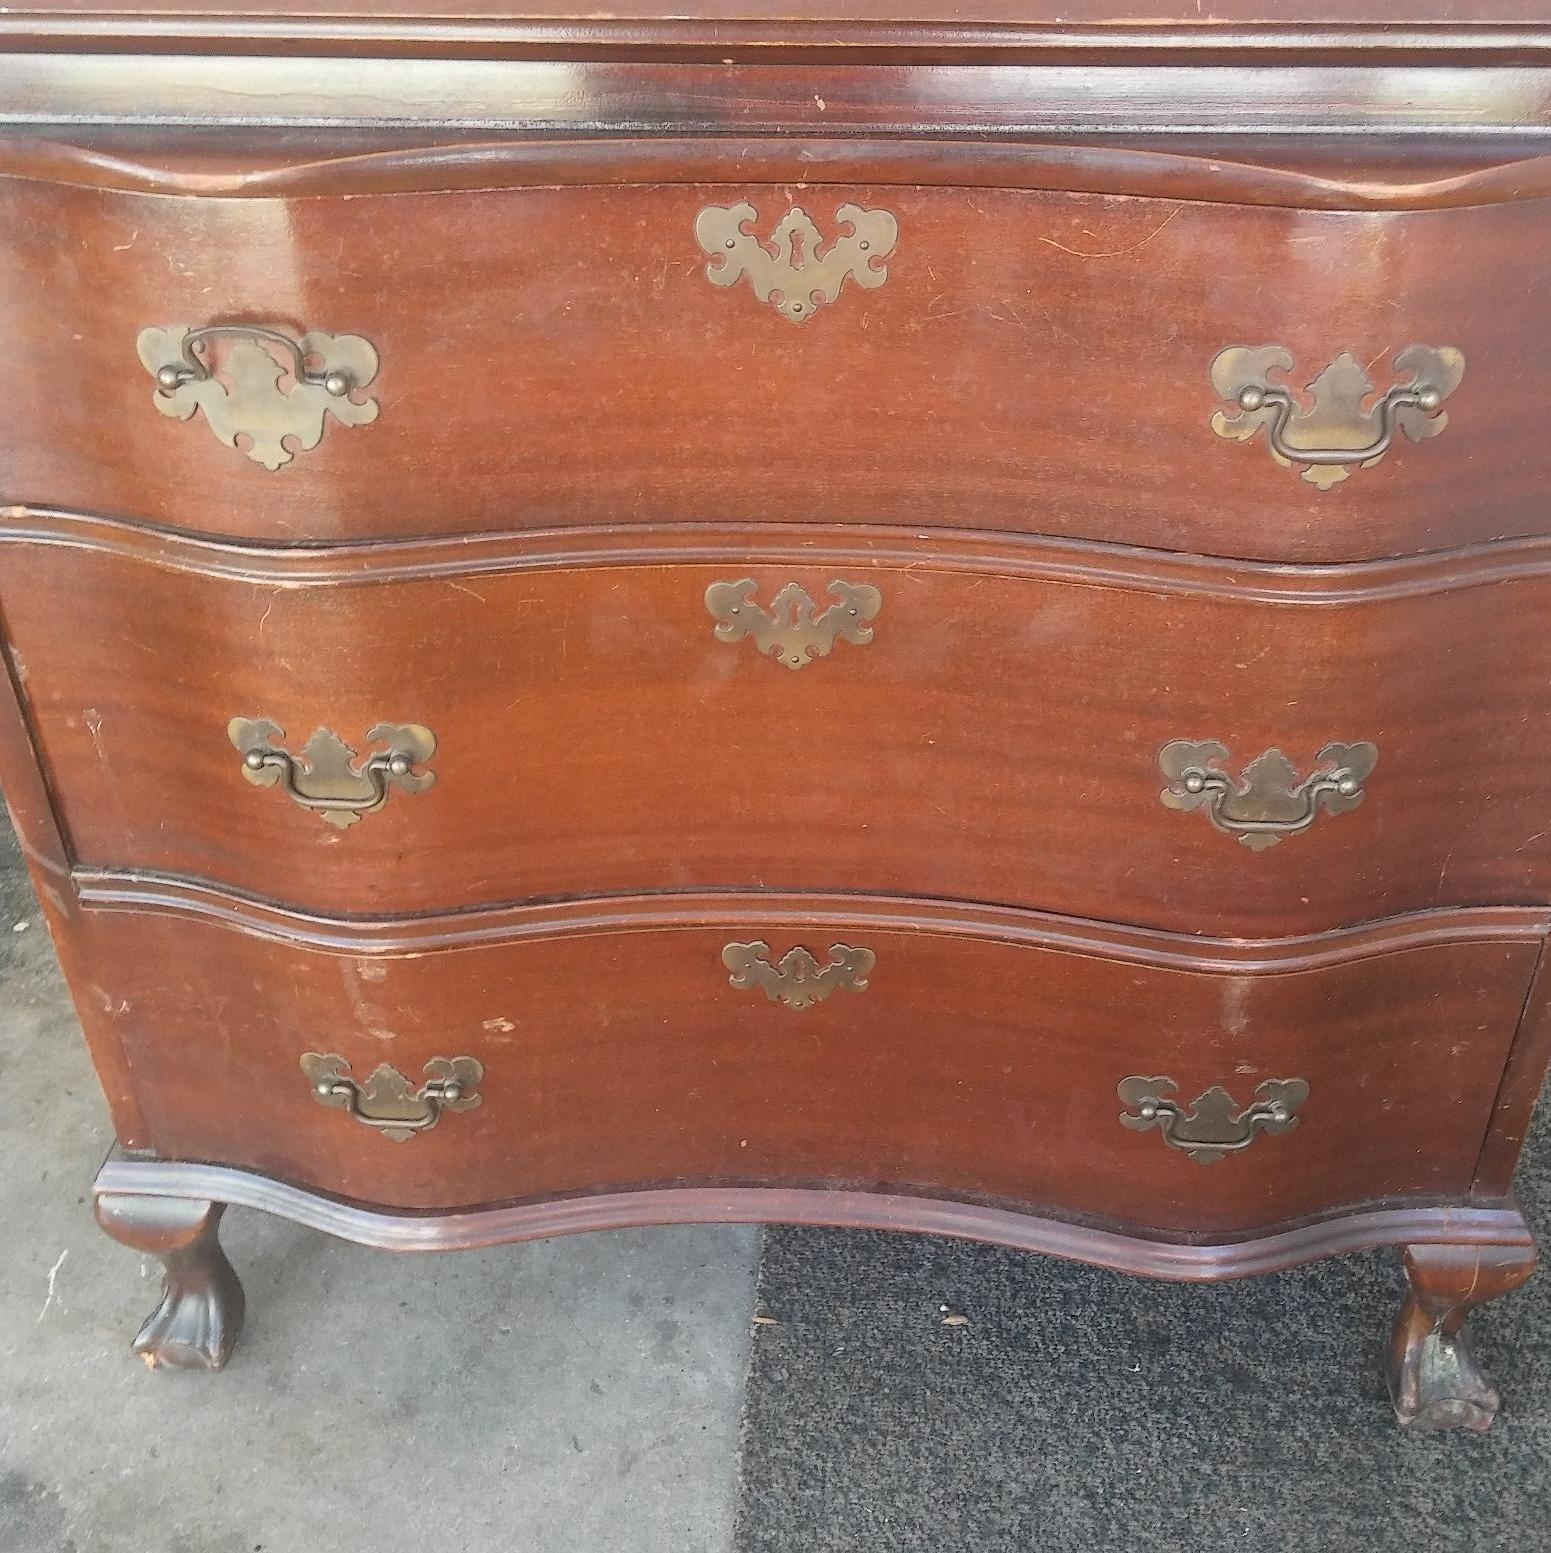 Antique Furniture Appraisal: Secretary Desk And Cedar Chest Antique Appraisal